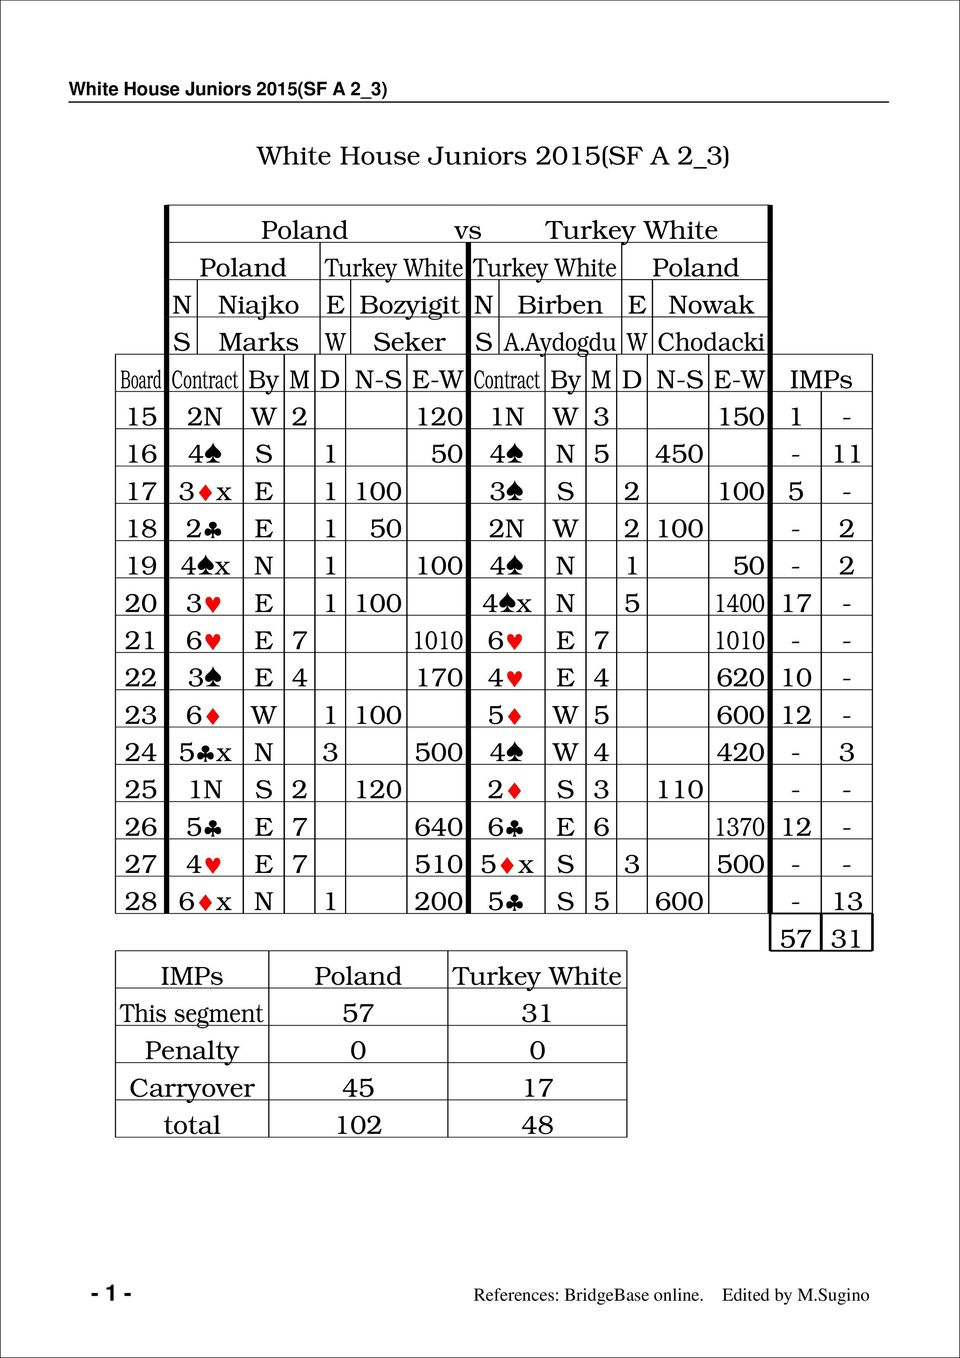 Aydogdu Chodacki Board Contract By M D - - Contract By M D - - IMPs 2 2 2 - - x 2-2 2 2-2 x - 2 2 x - 2 -